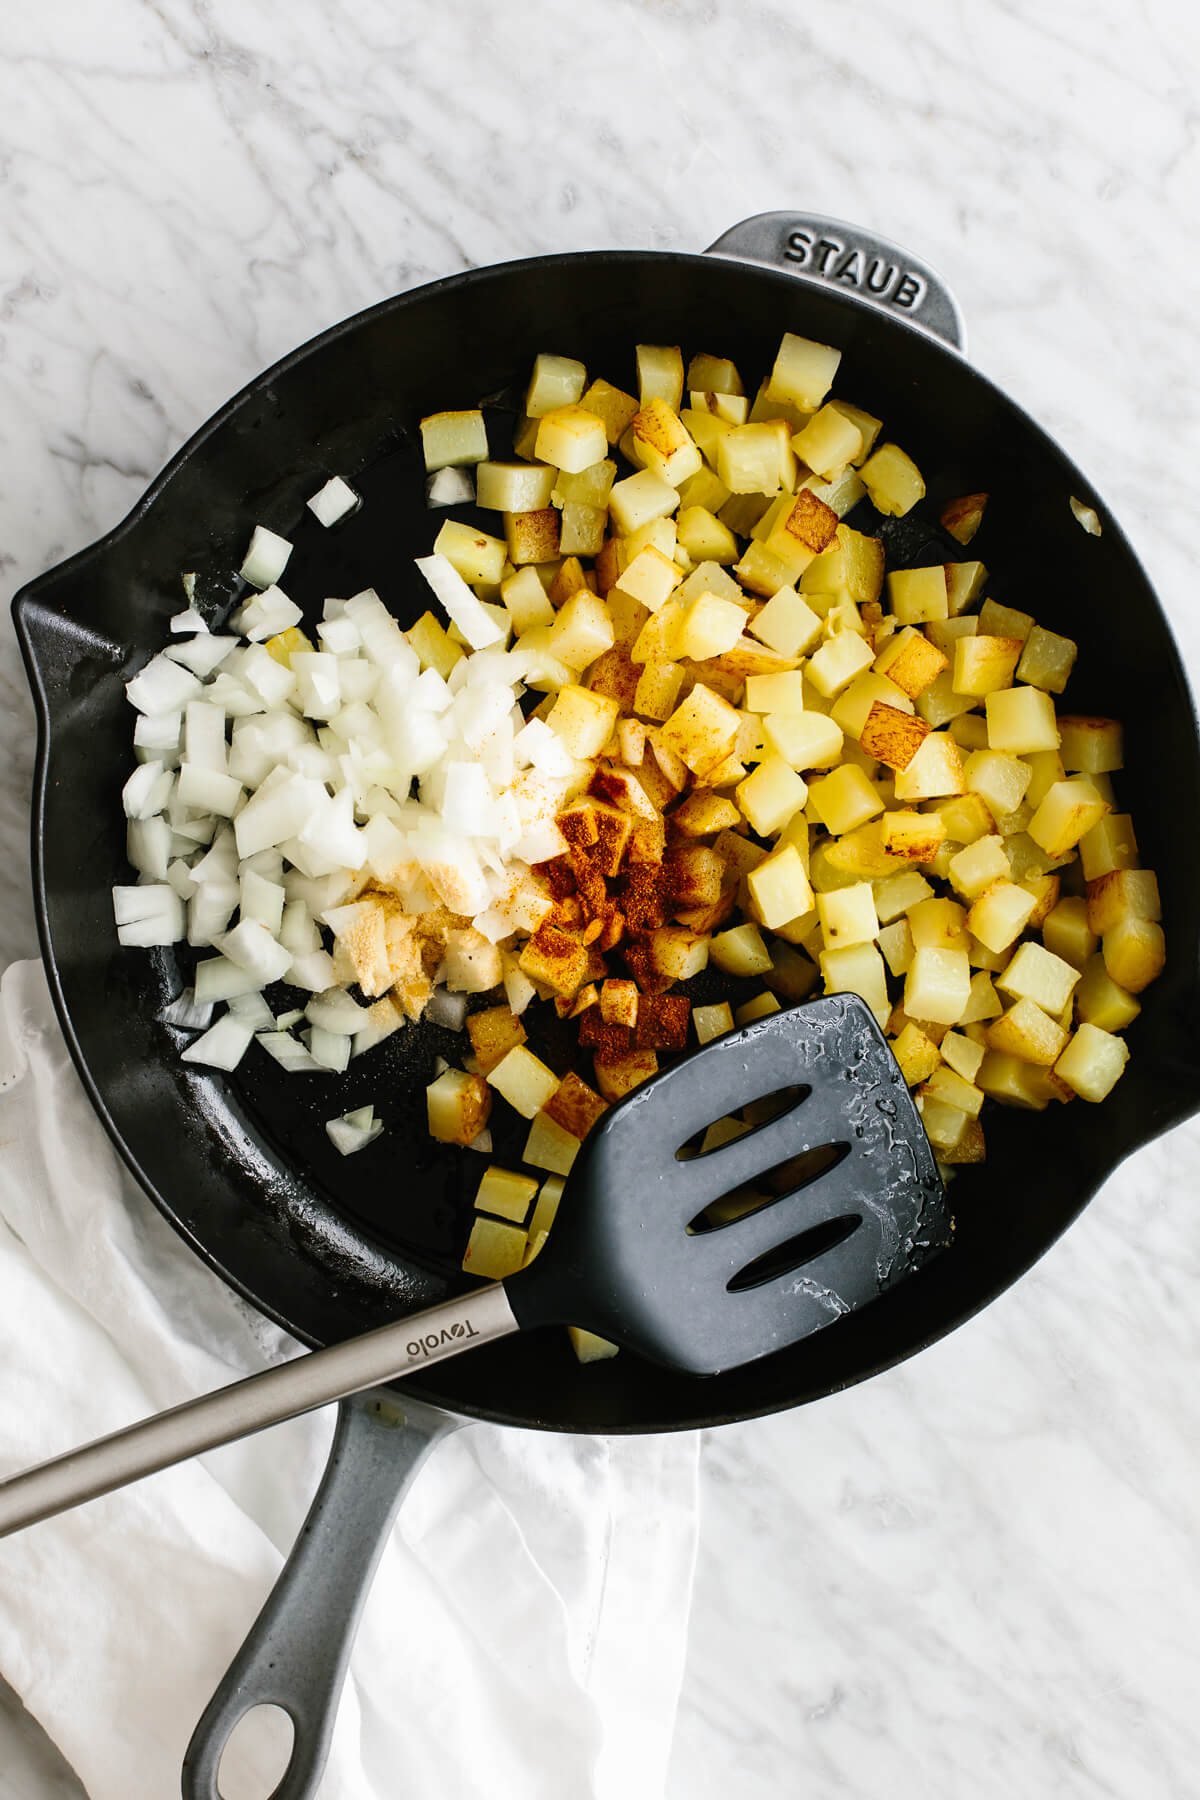 Diced potatoes in a skillet with onion and spices.